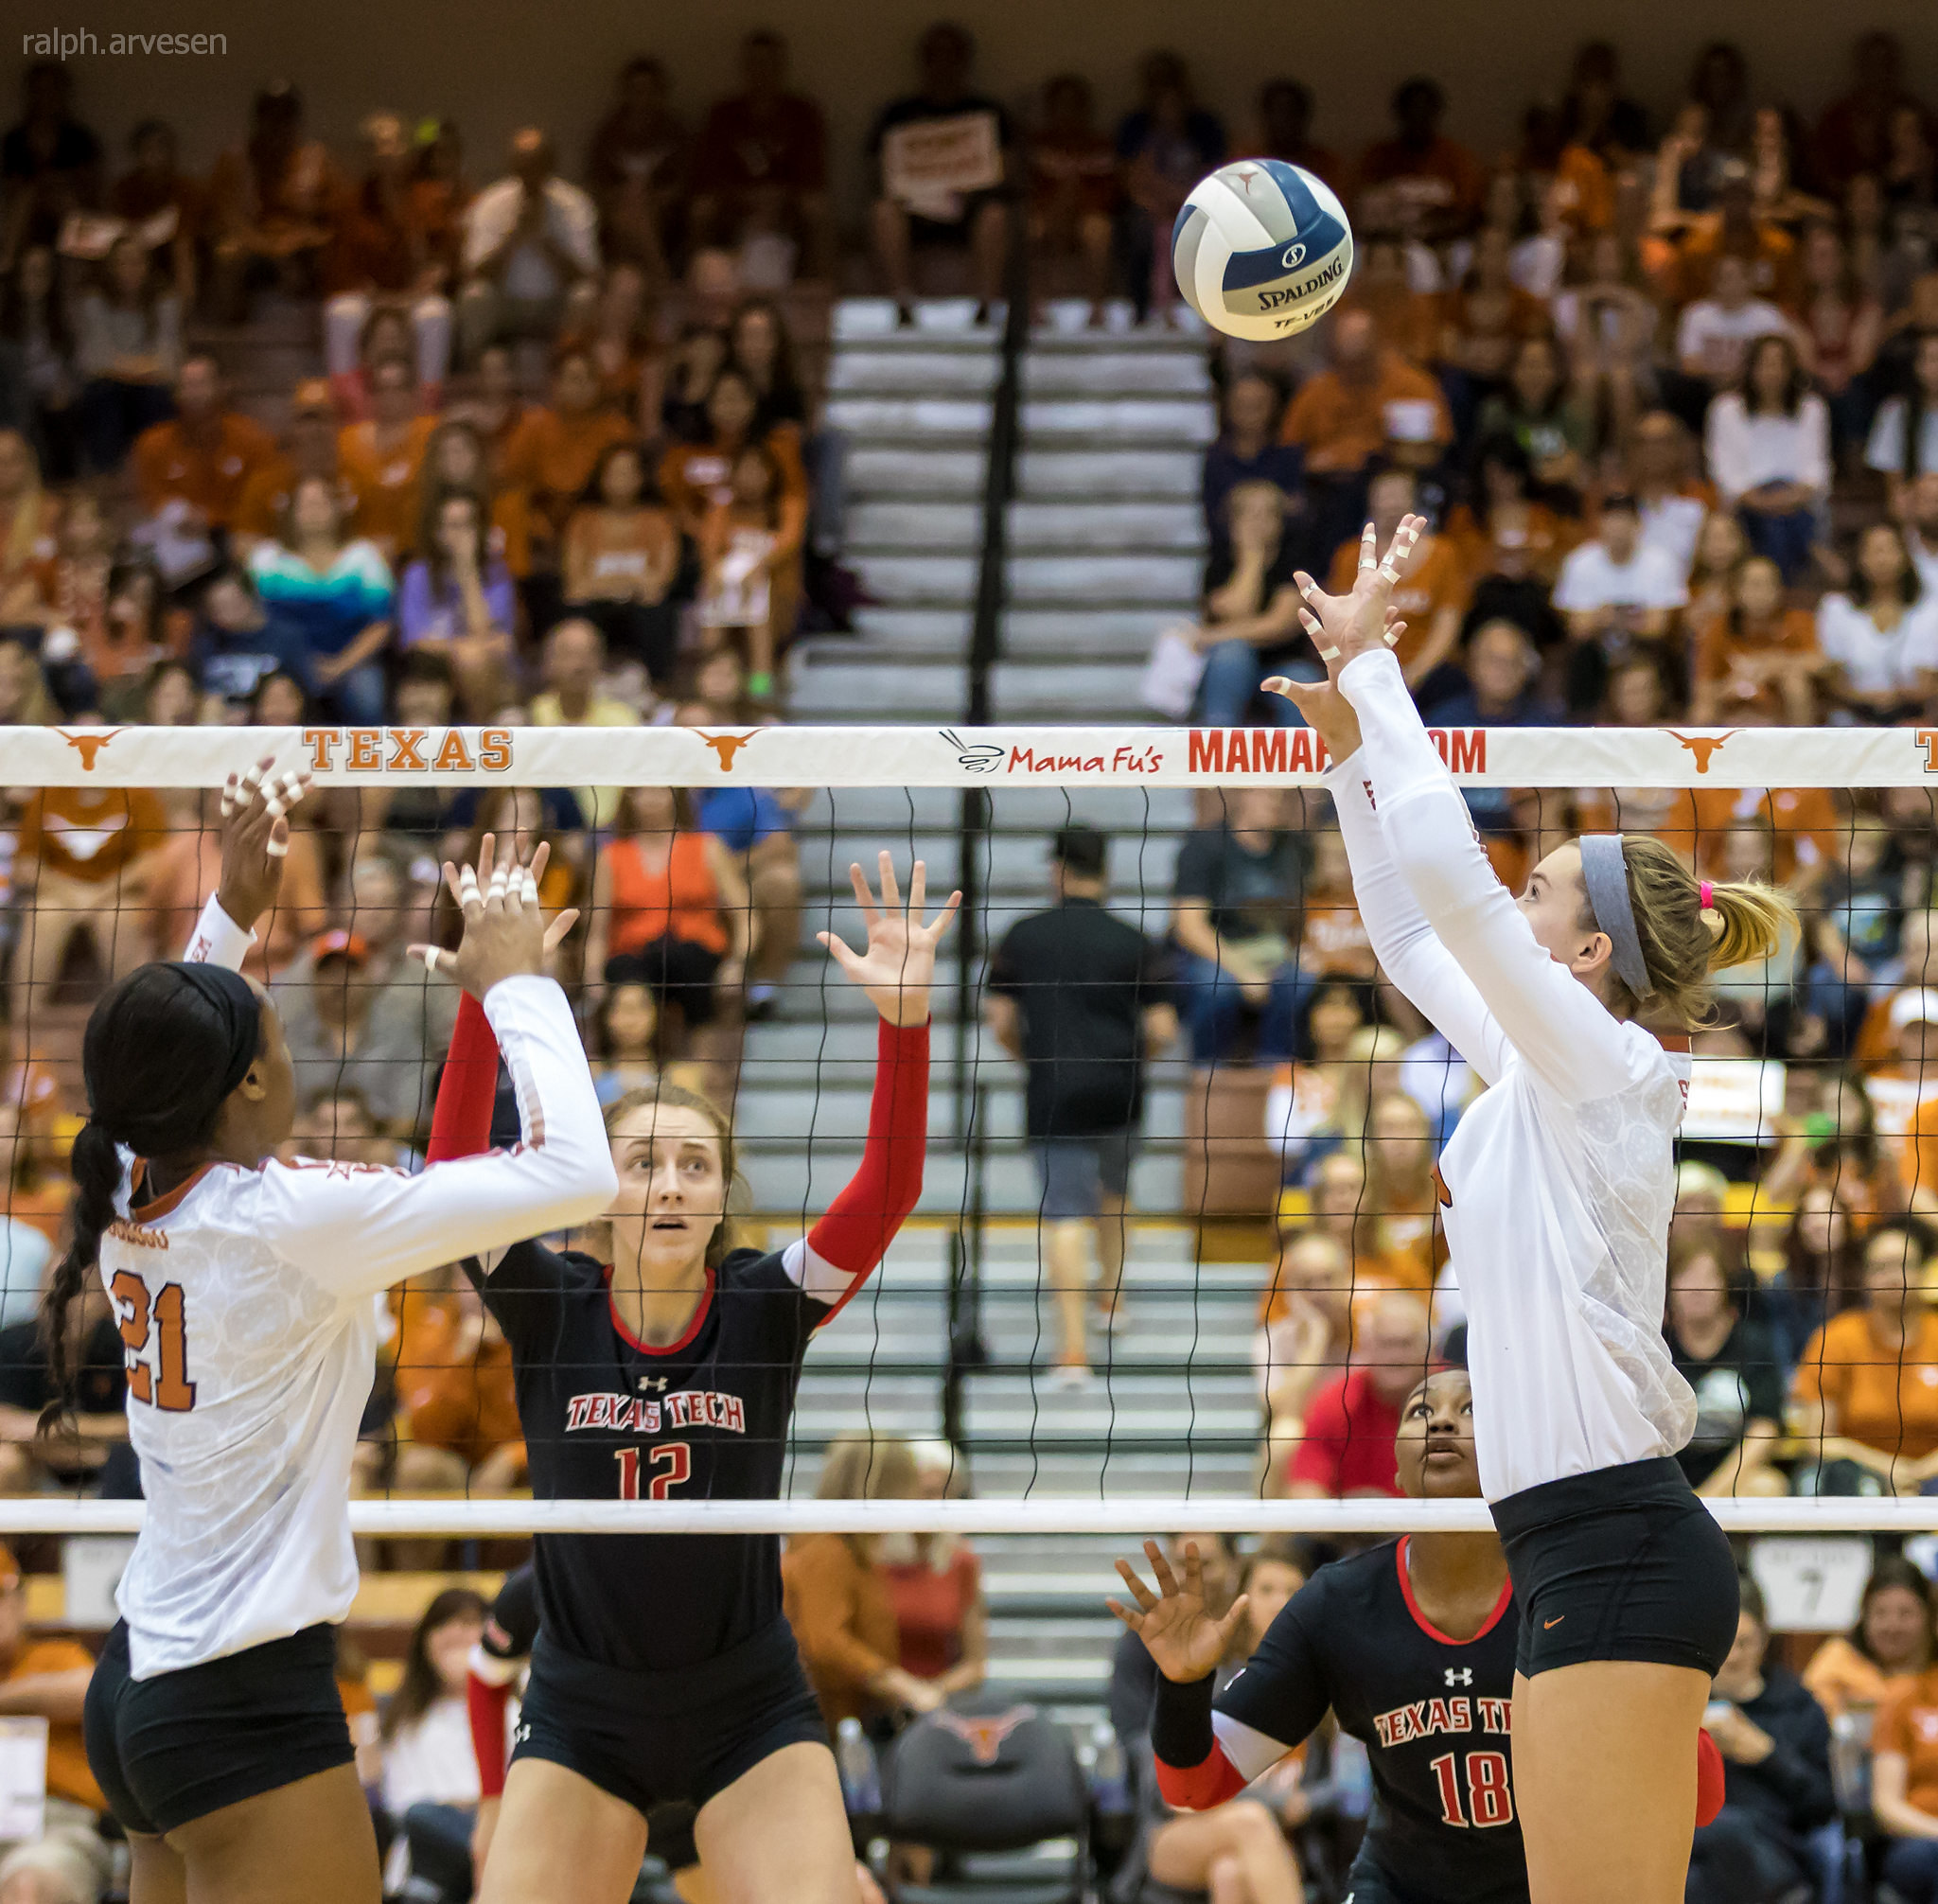 Longhorns Texas setter about to set a volleyball to her middle hitter. (Ralph Aversen)